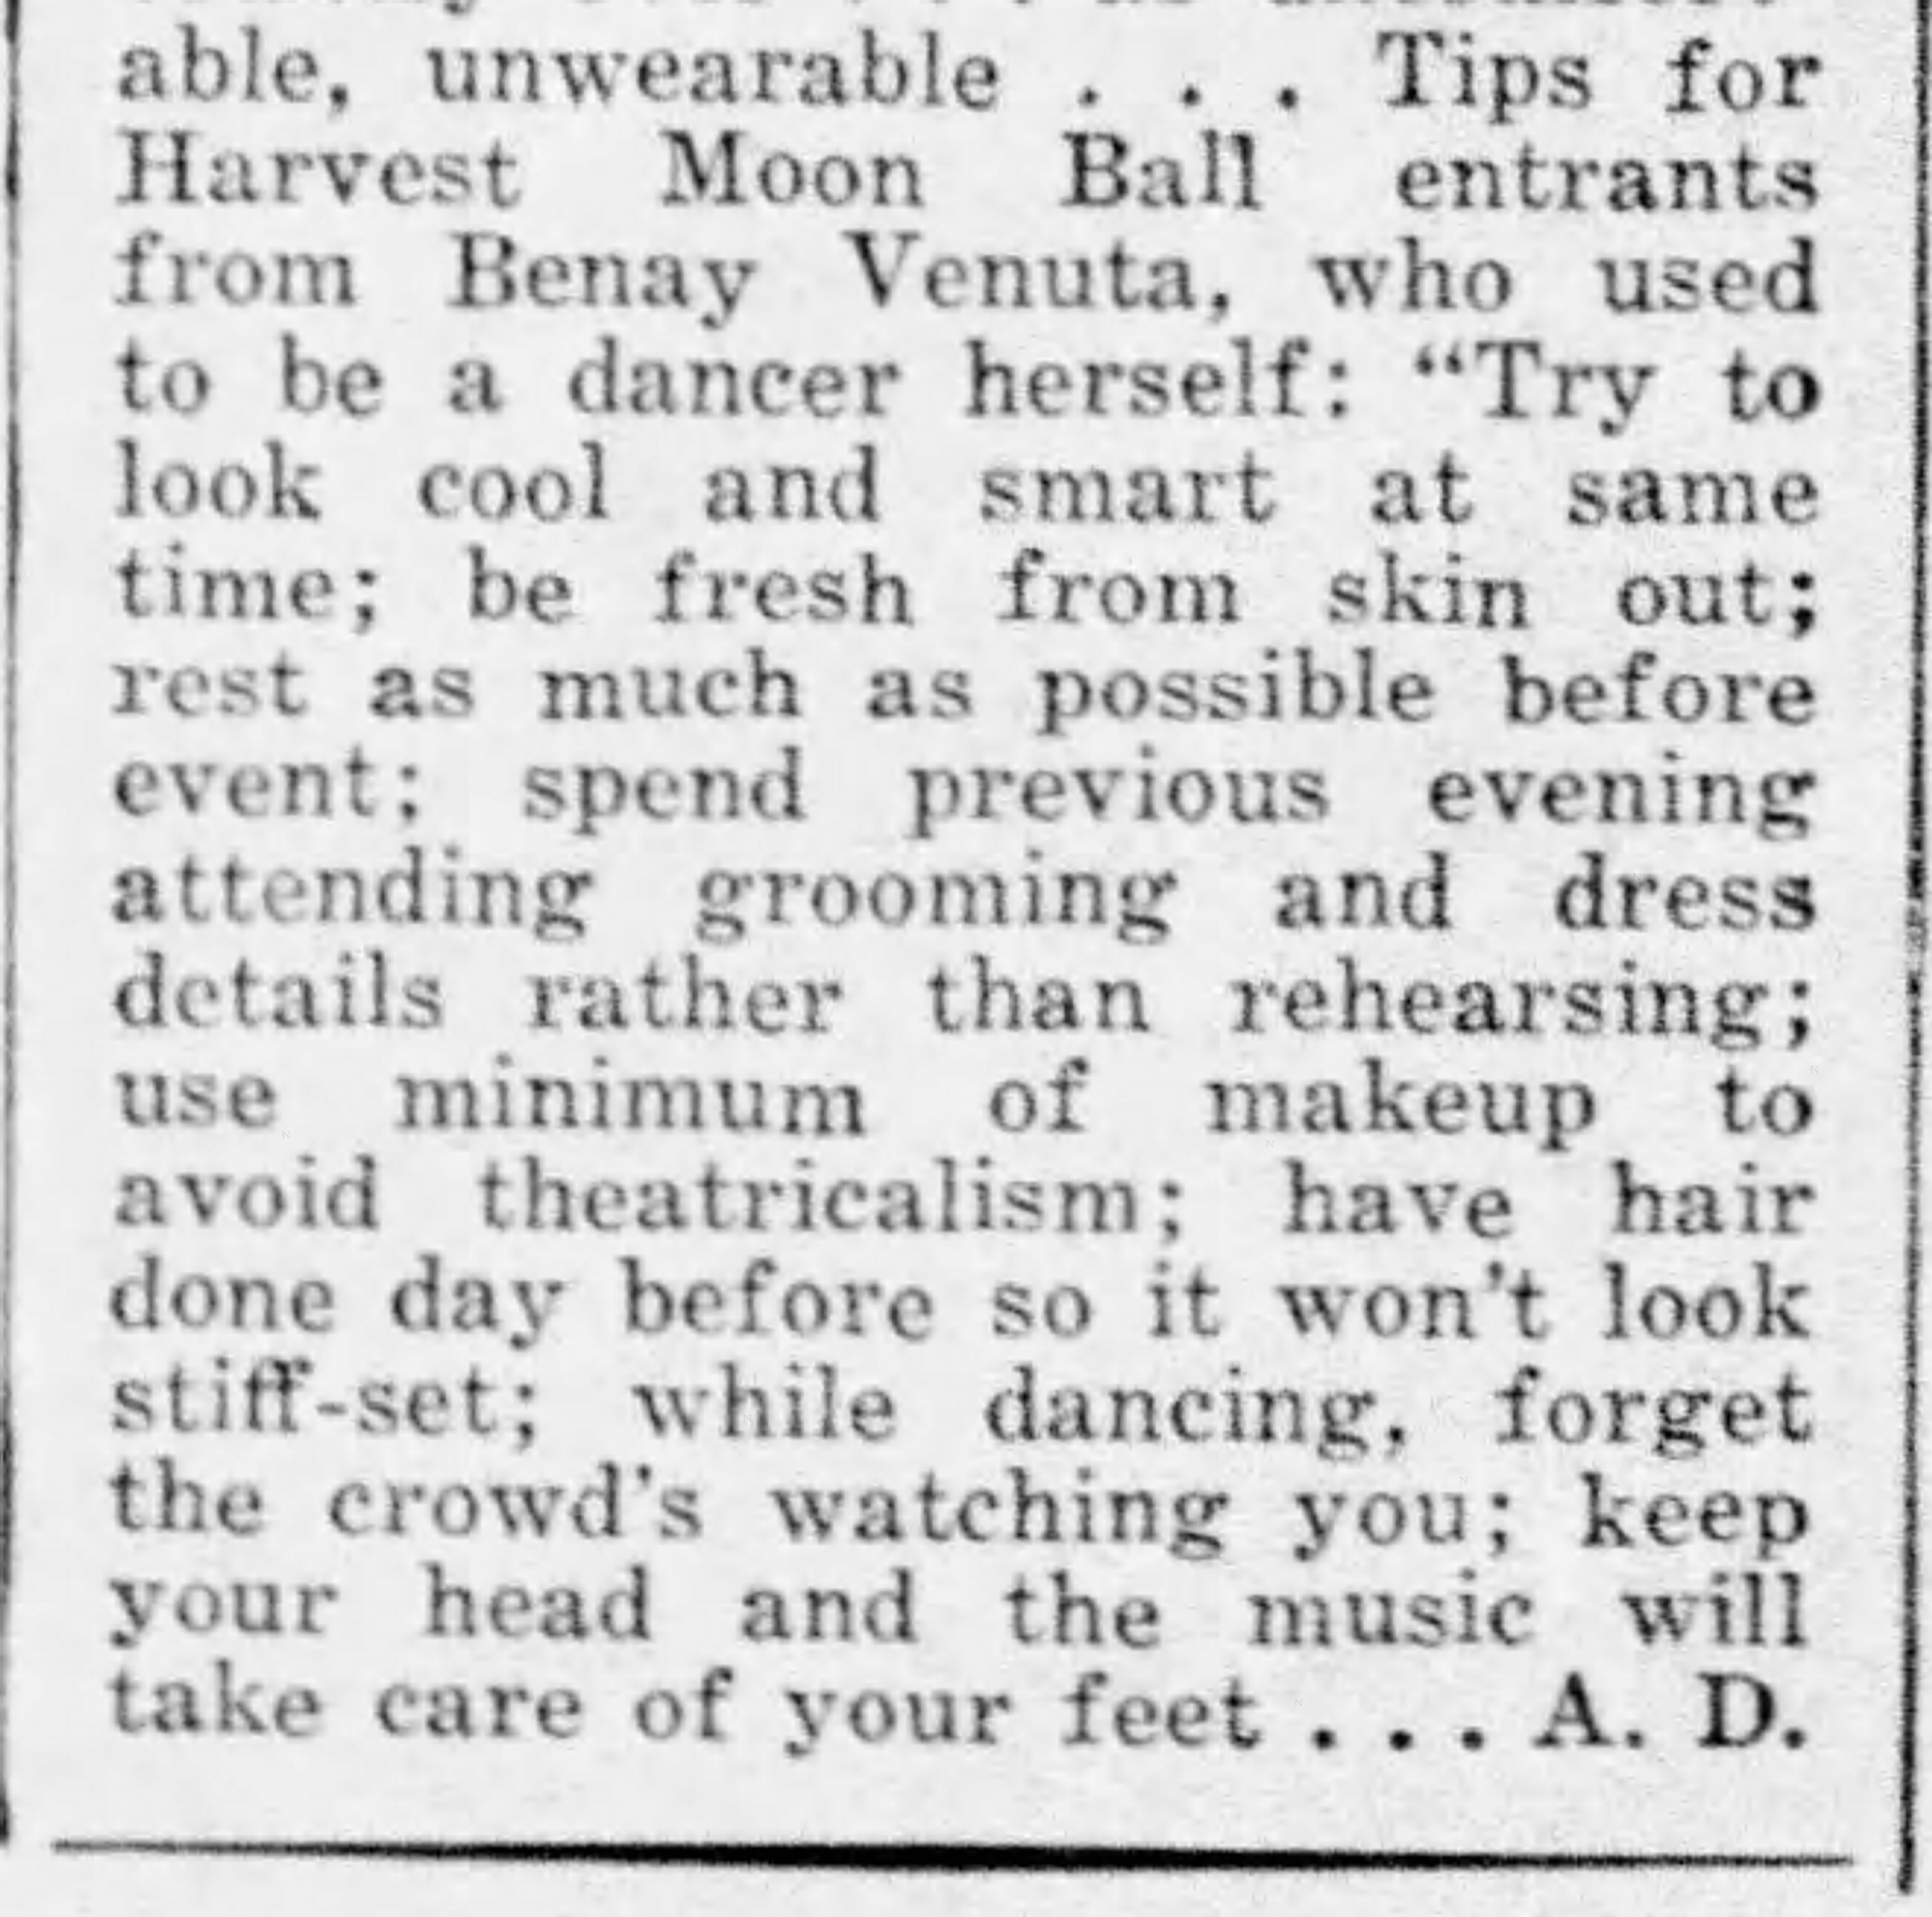 Tips for dancers in the HMB Daily_News_Sat__Aug_19__1939_